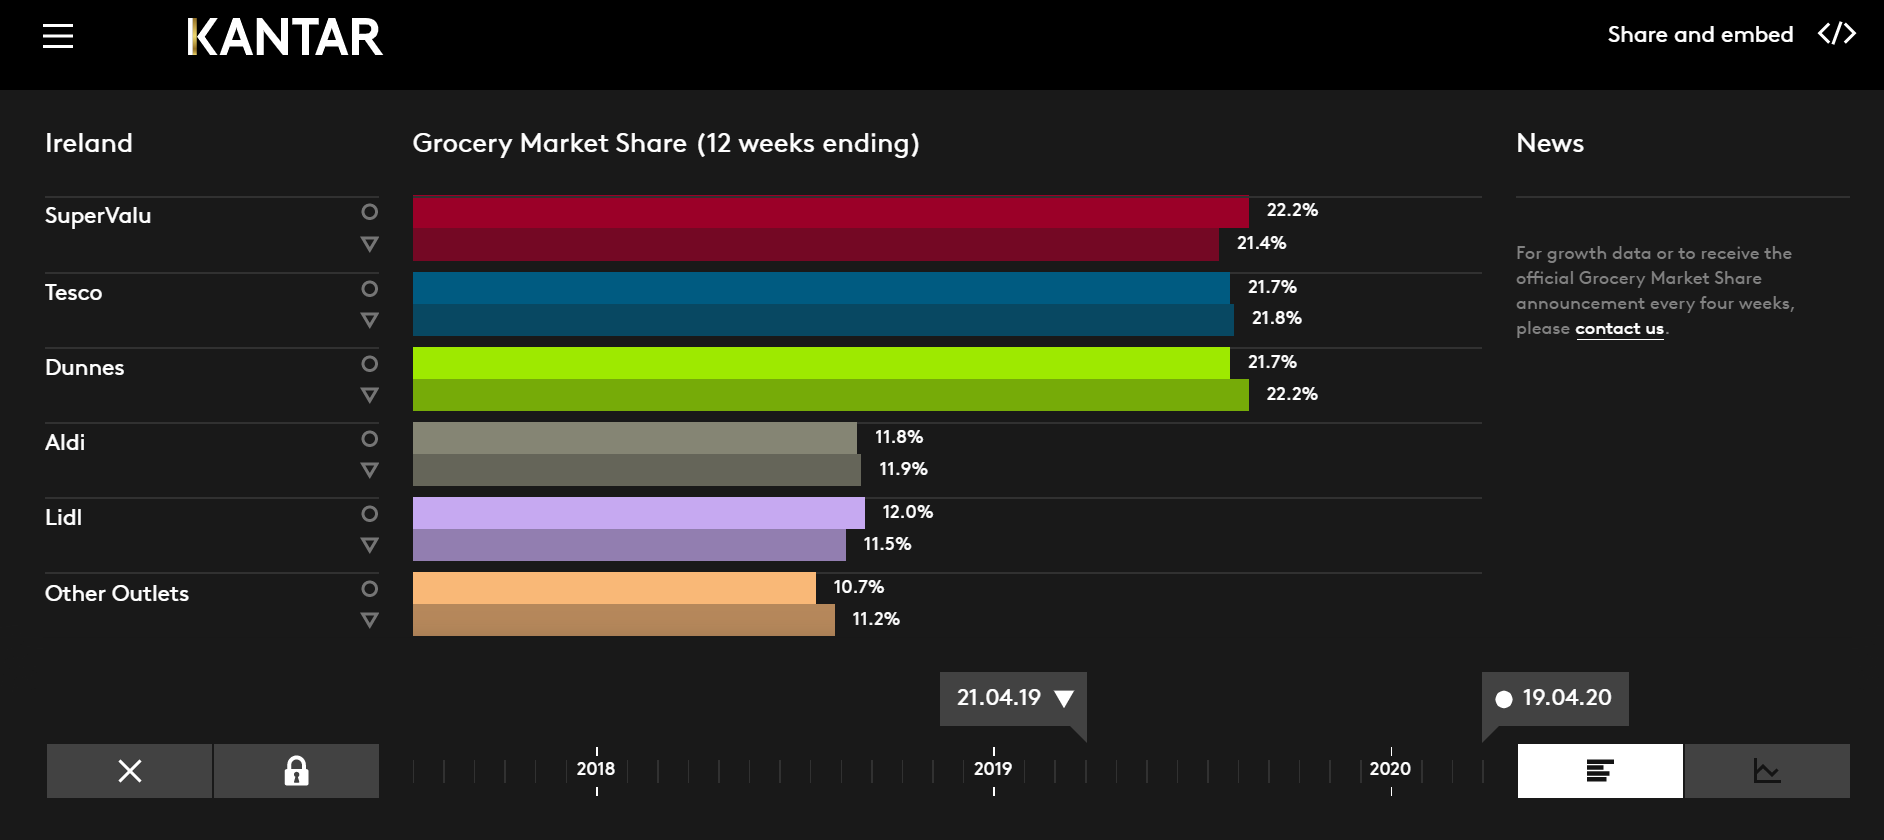 Kantar's portal allows a visual comparison of the year on year market share gains and losses